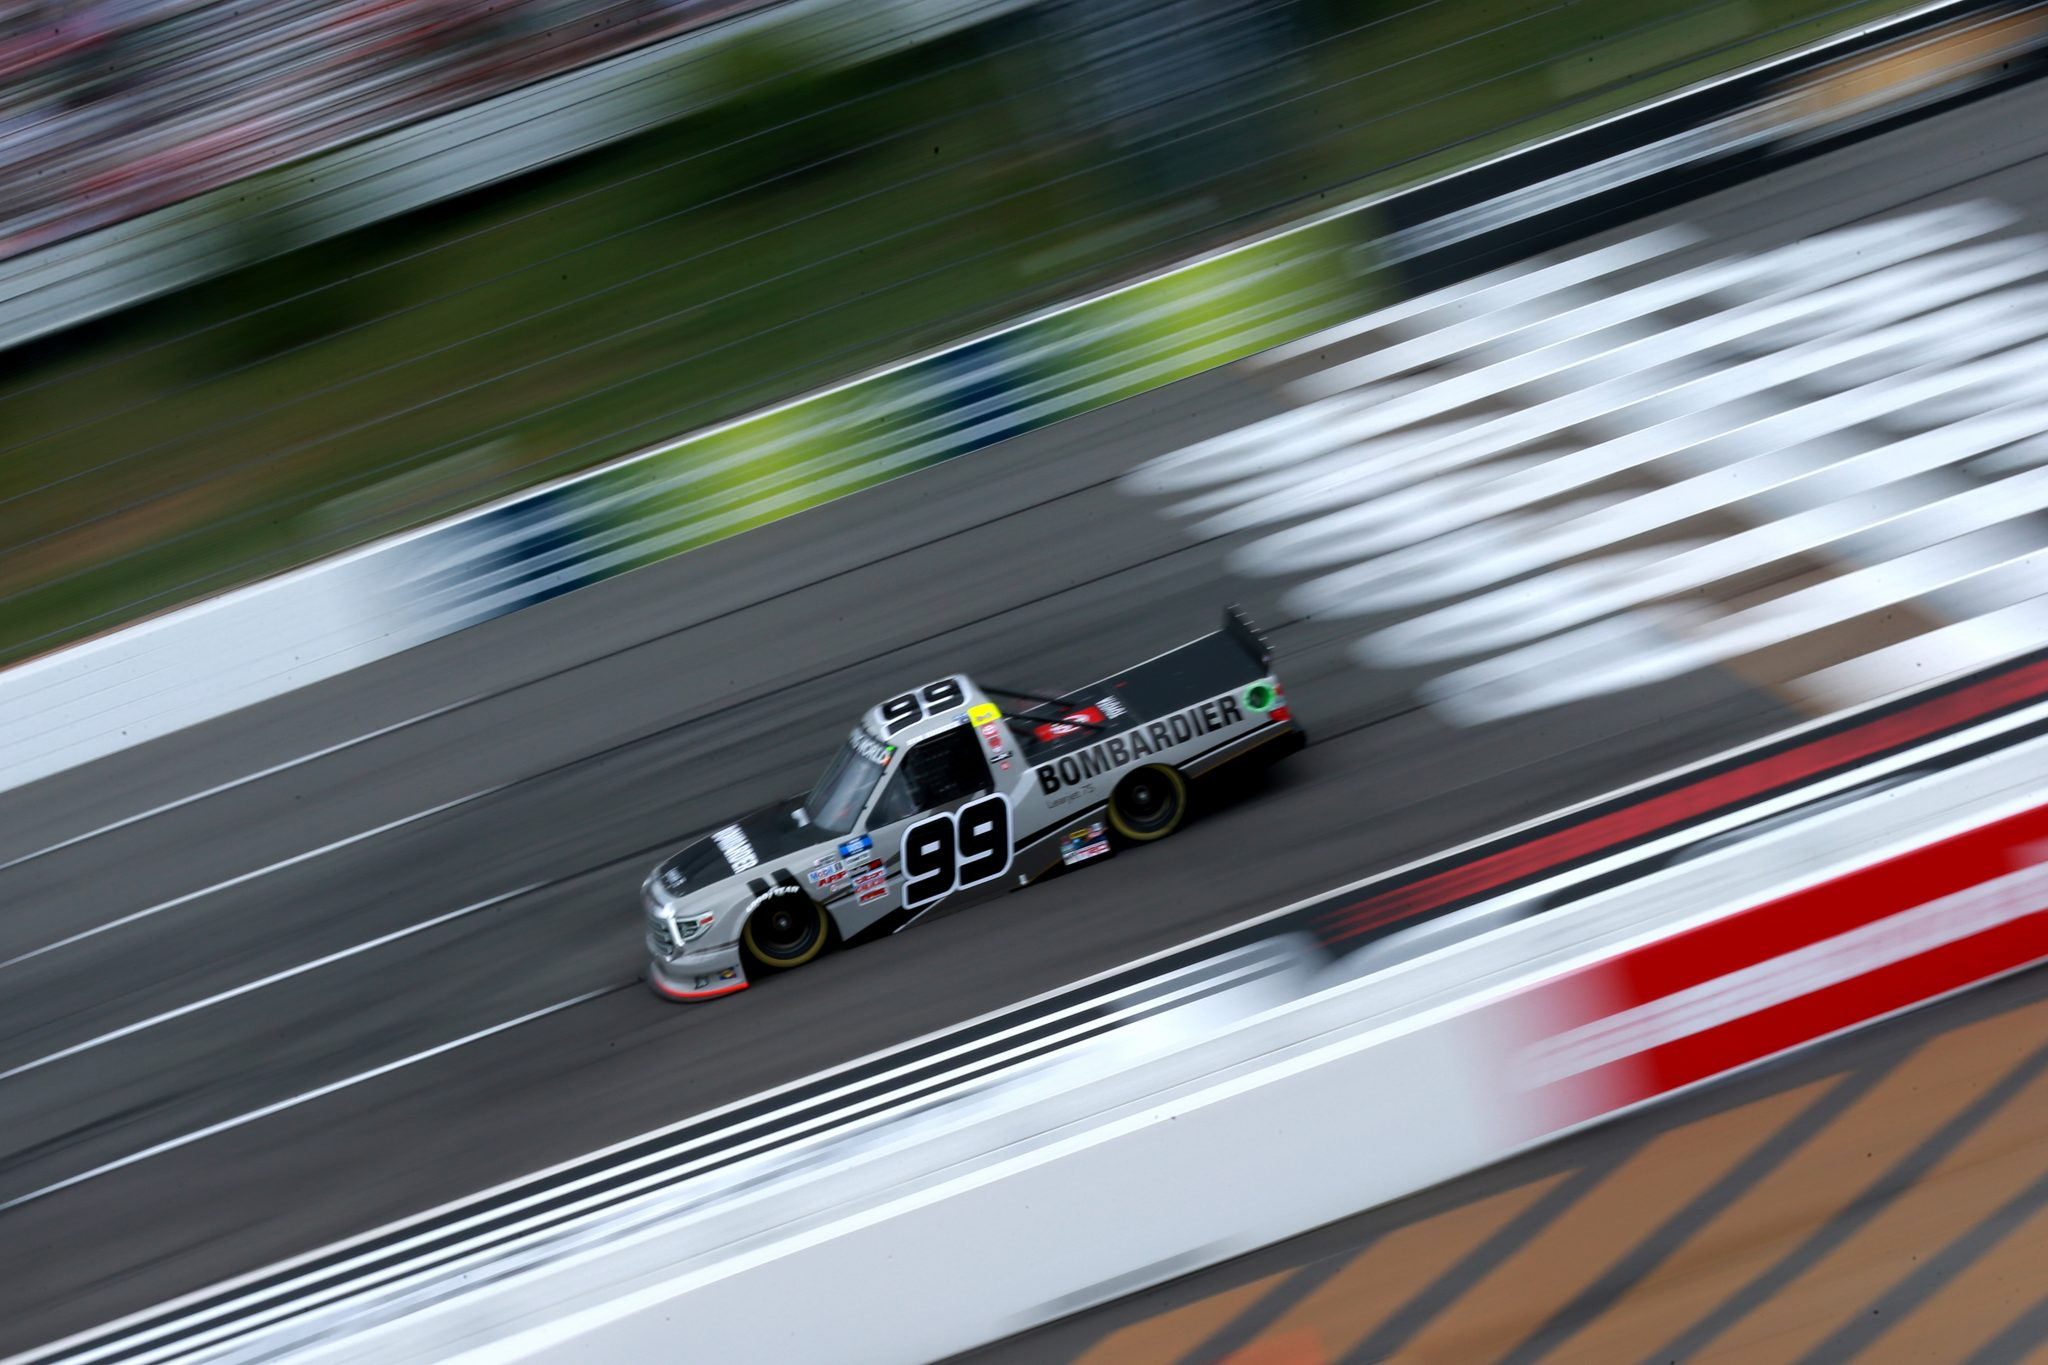 LONG POND, PENNSYLVANIA - JUNE 26: Ben Rhodes, driver of the #99 Toyota, drives during the NASCAR Camping World Truck Series CRC Brakleen 150 at Pocono Raceway on June 26, 2021 in Long Pond, Pennsylvania. (Photo by Sean Gardner/Getty Images) | Getty Images